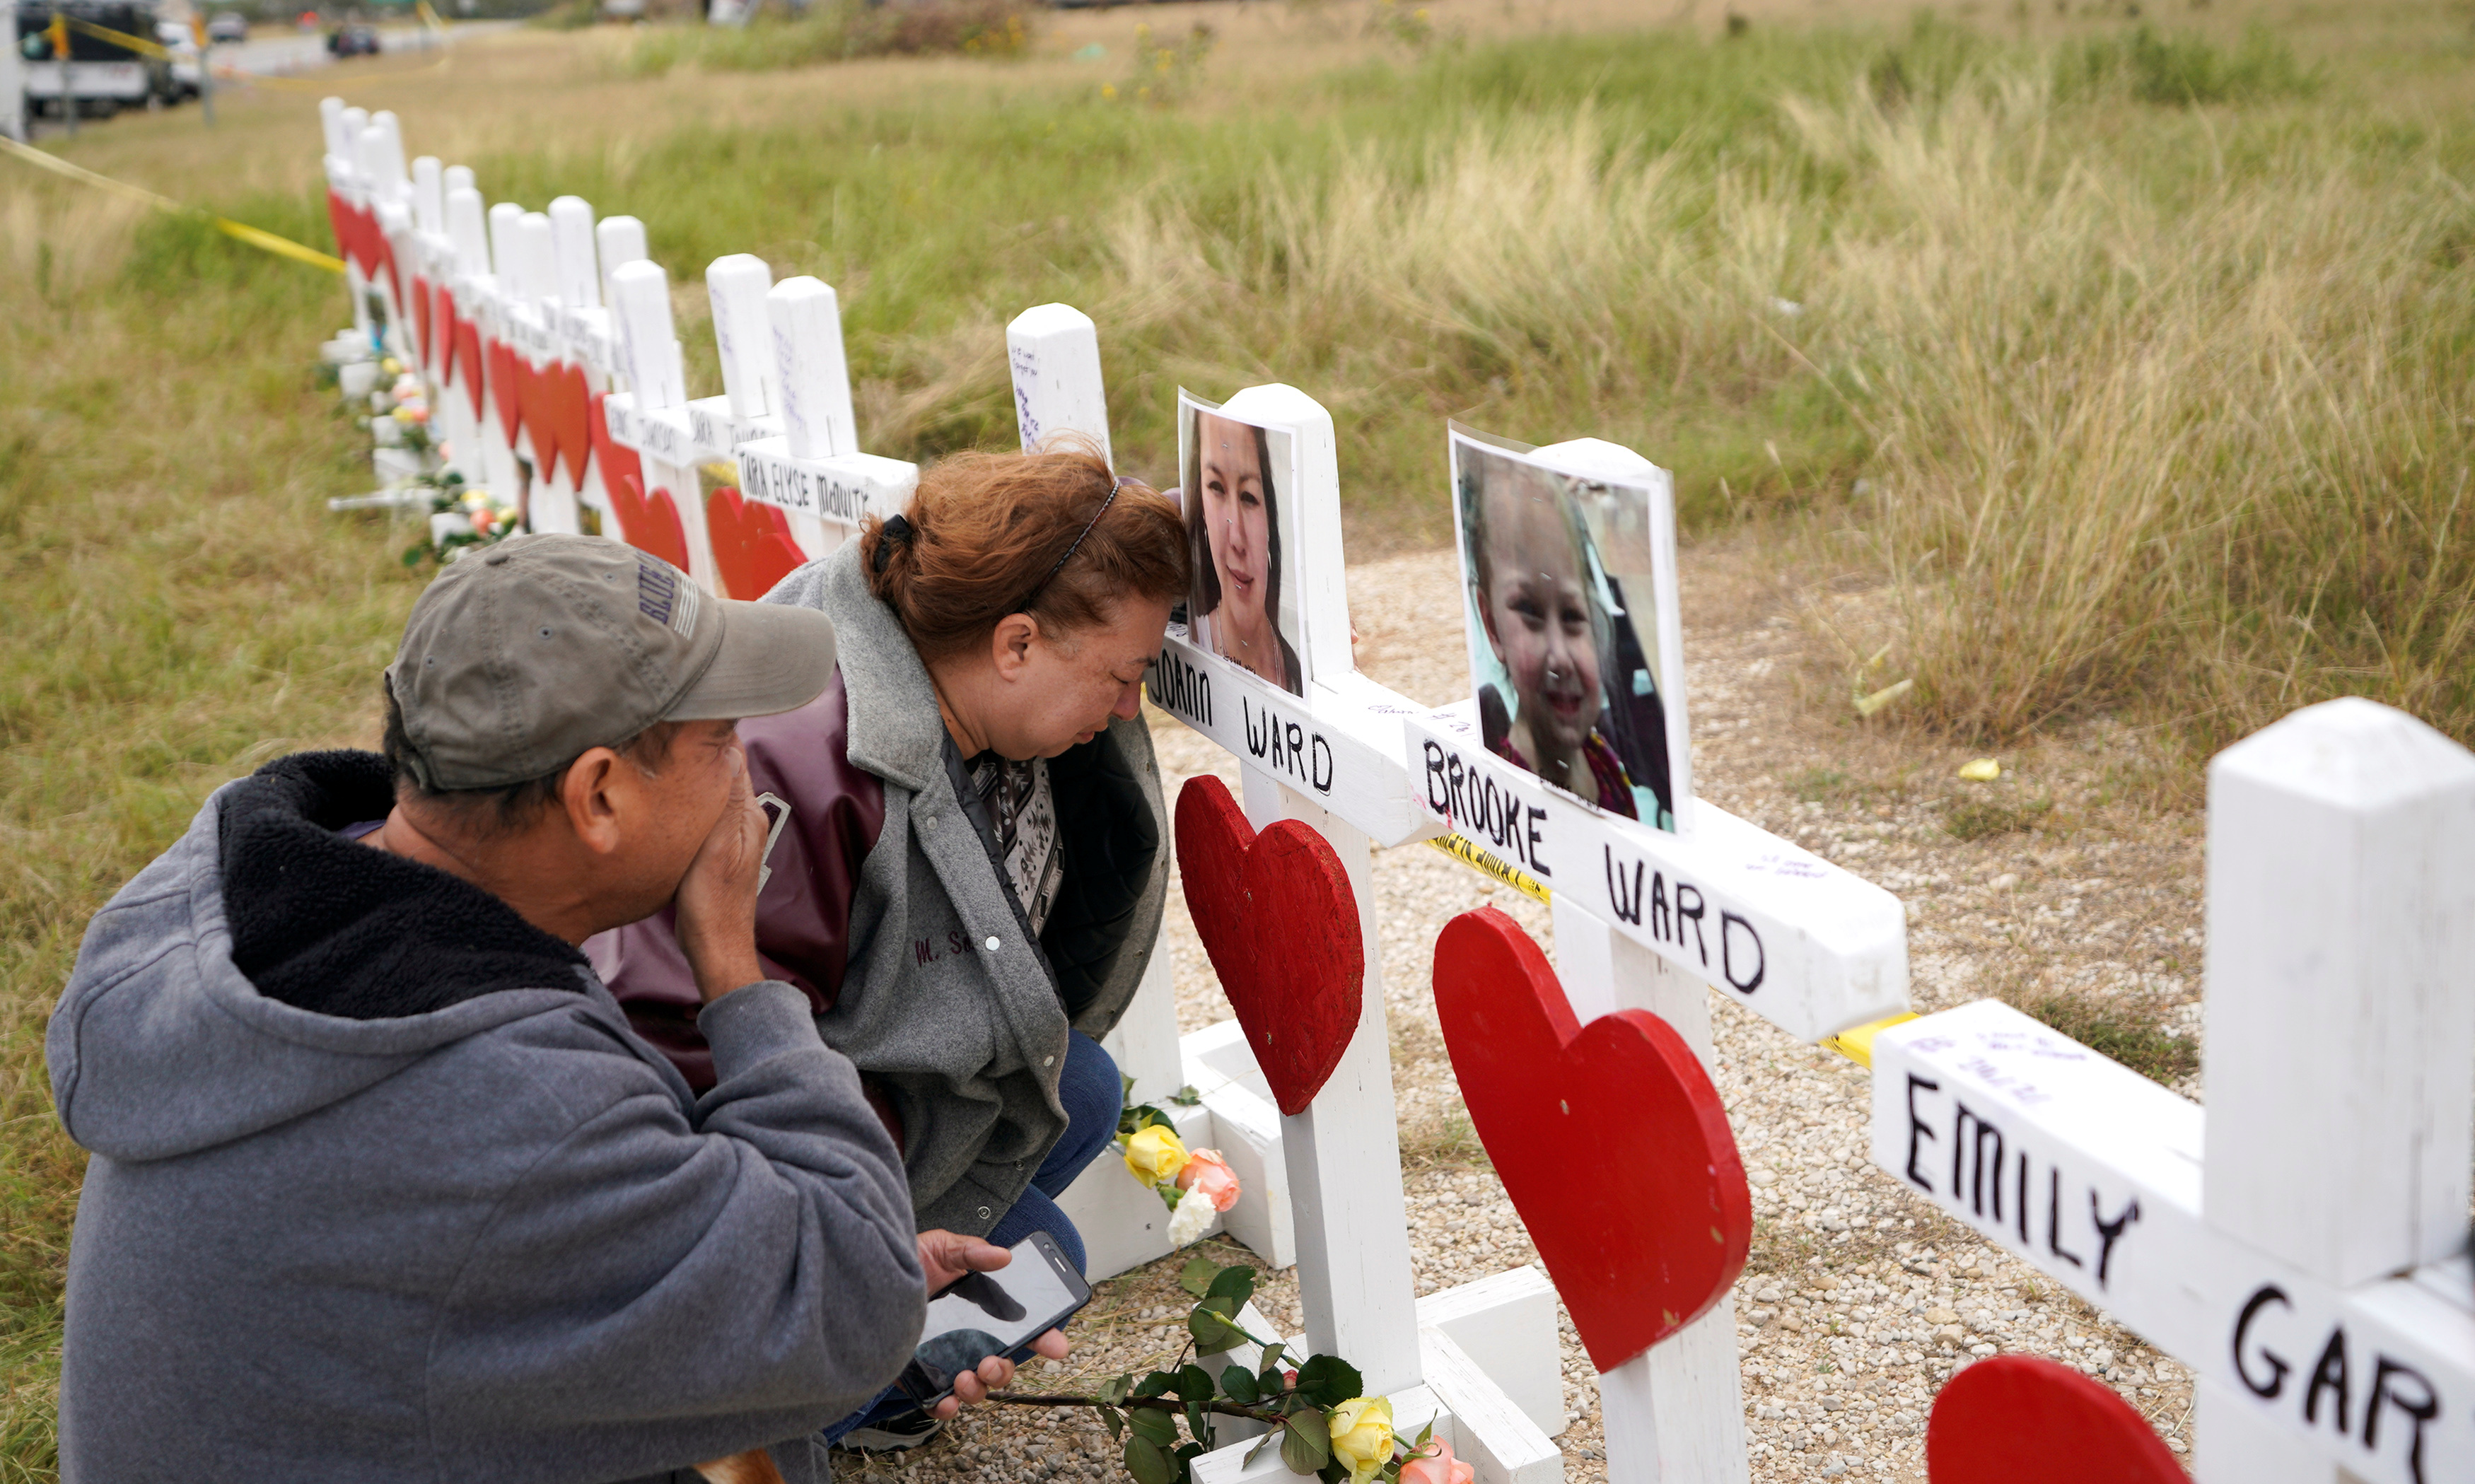 Lorenzo Flores (L) and Terrie Smith react at a line of crosses in remembrance of those killed in the shooting at the First Baptist Church of Sutherland Springs, Texas, U.S., November 9, 2017.